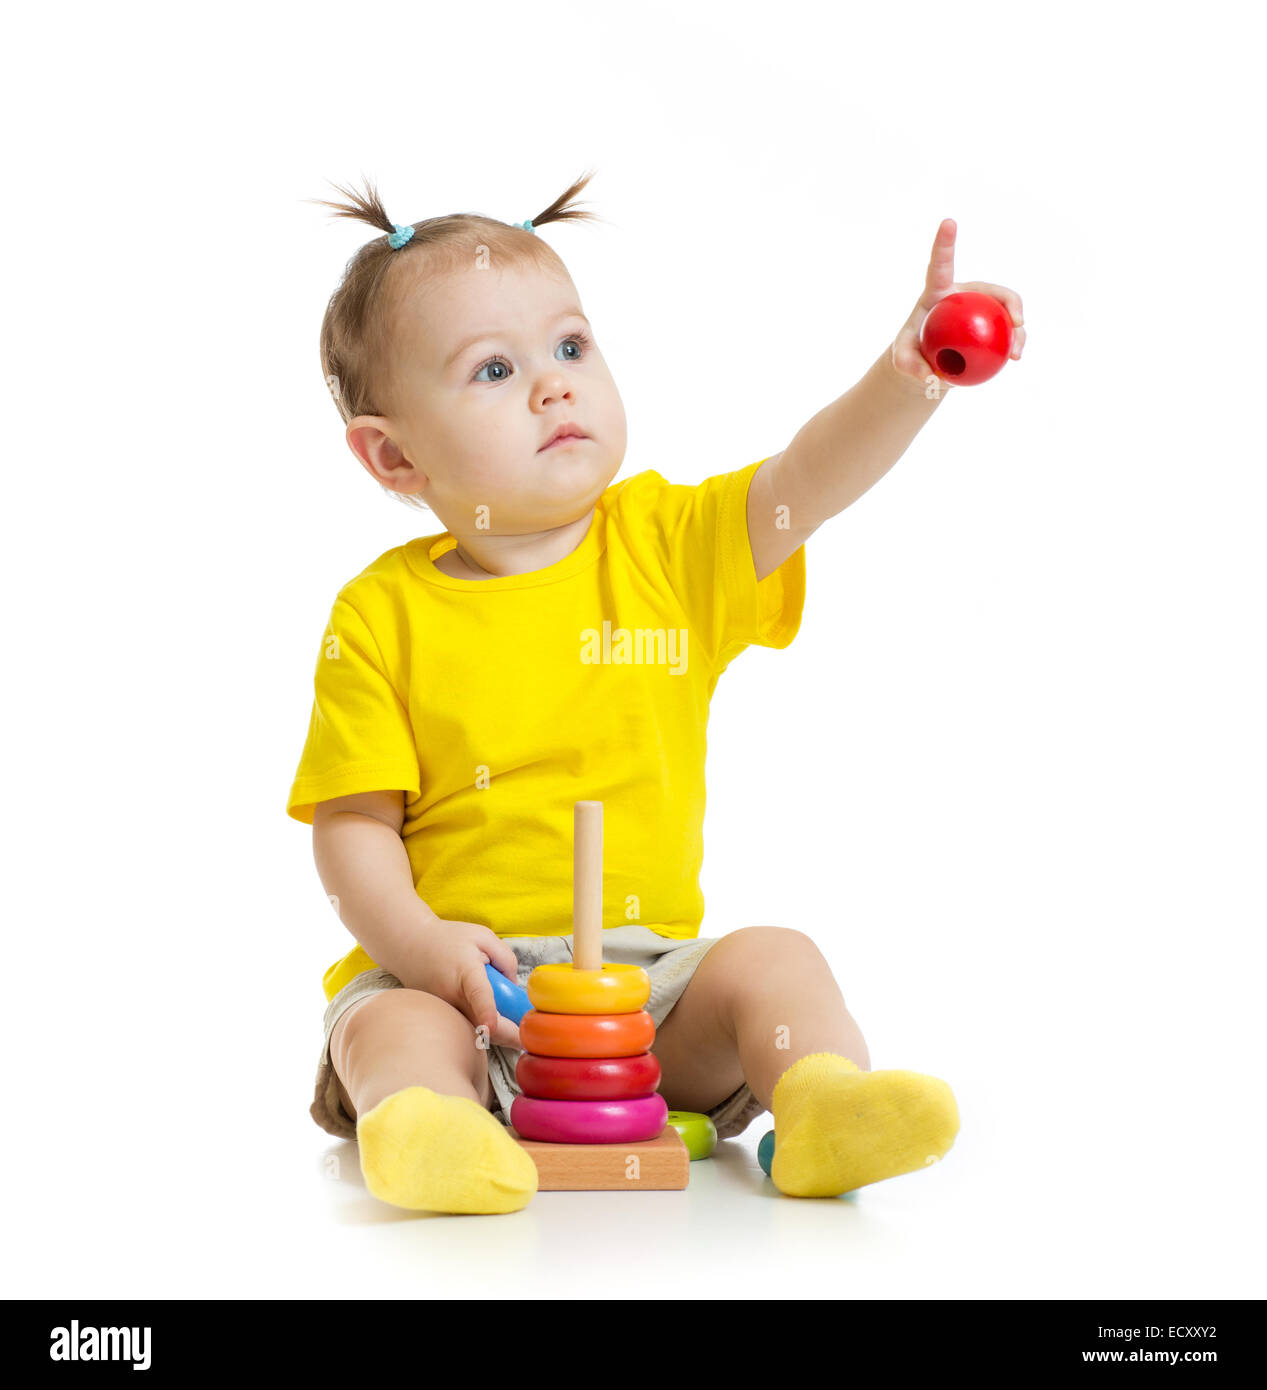 baby playing with colorful toy and pointing by finger isolated - Stock Image